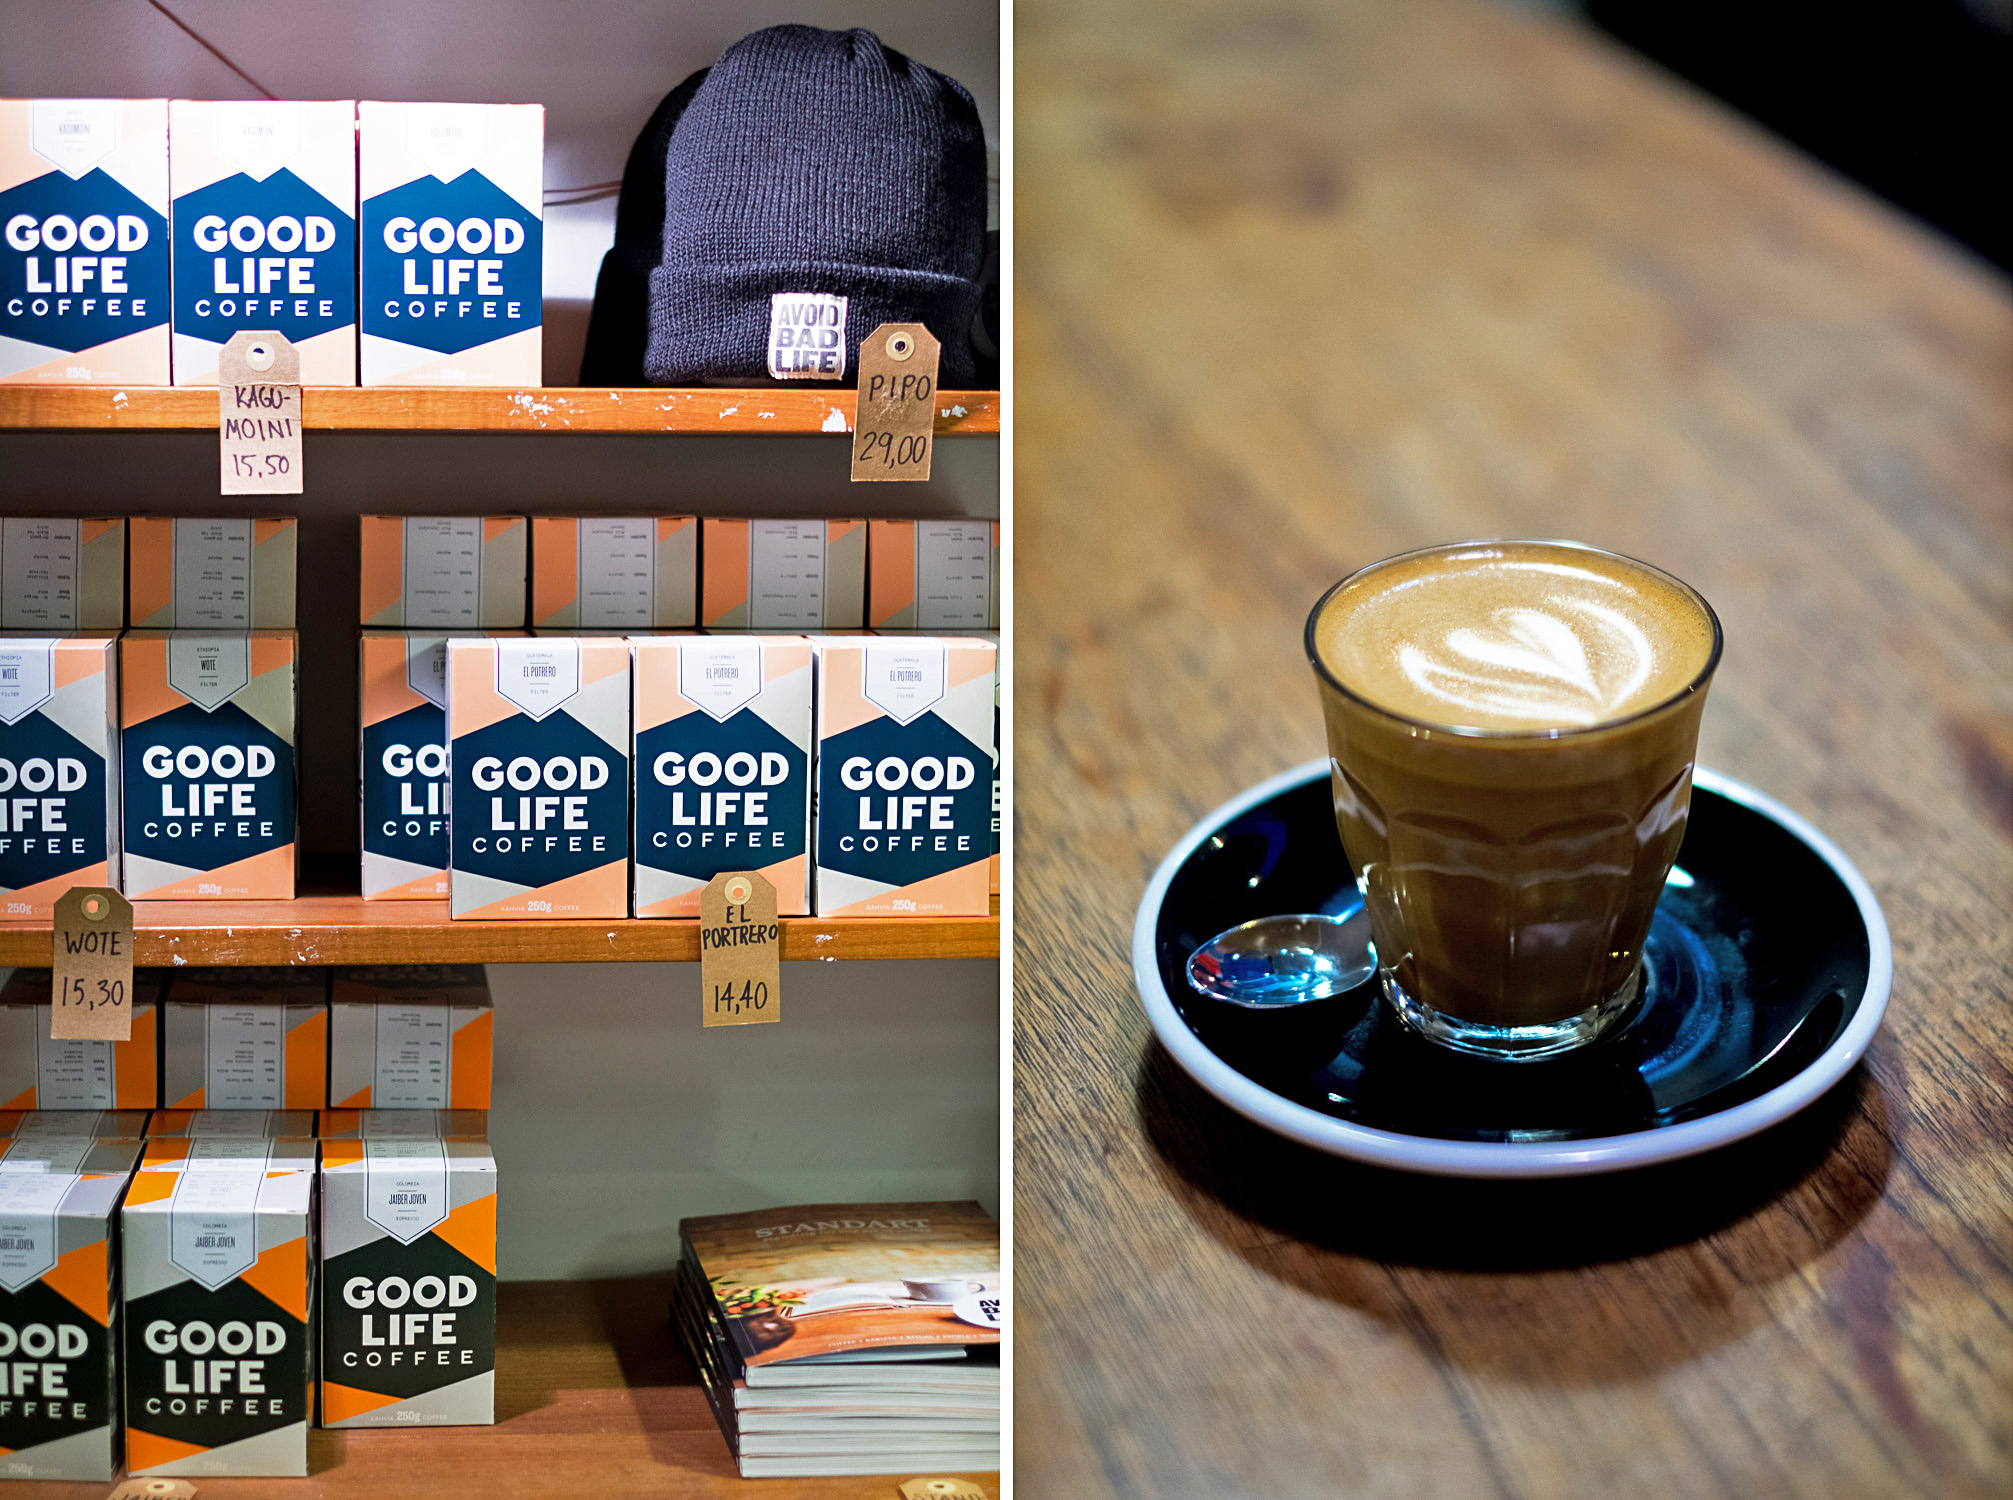 The Good Life Coffee Roasters / Helsinki: A Two-Day City Guide to The Finnish Capital